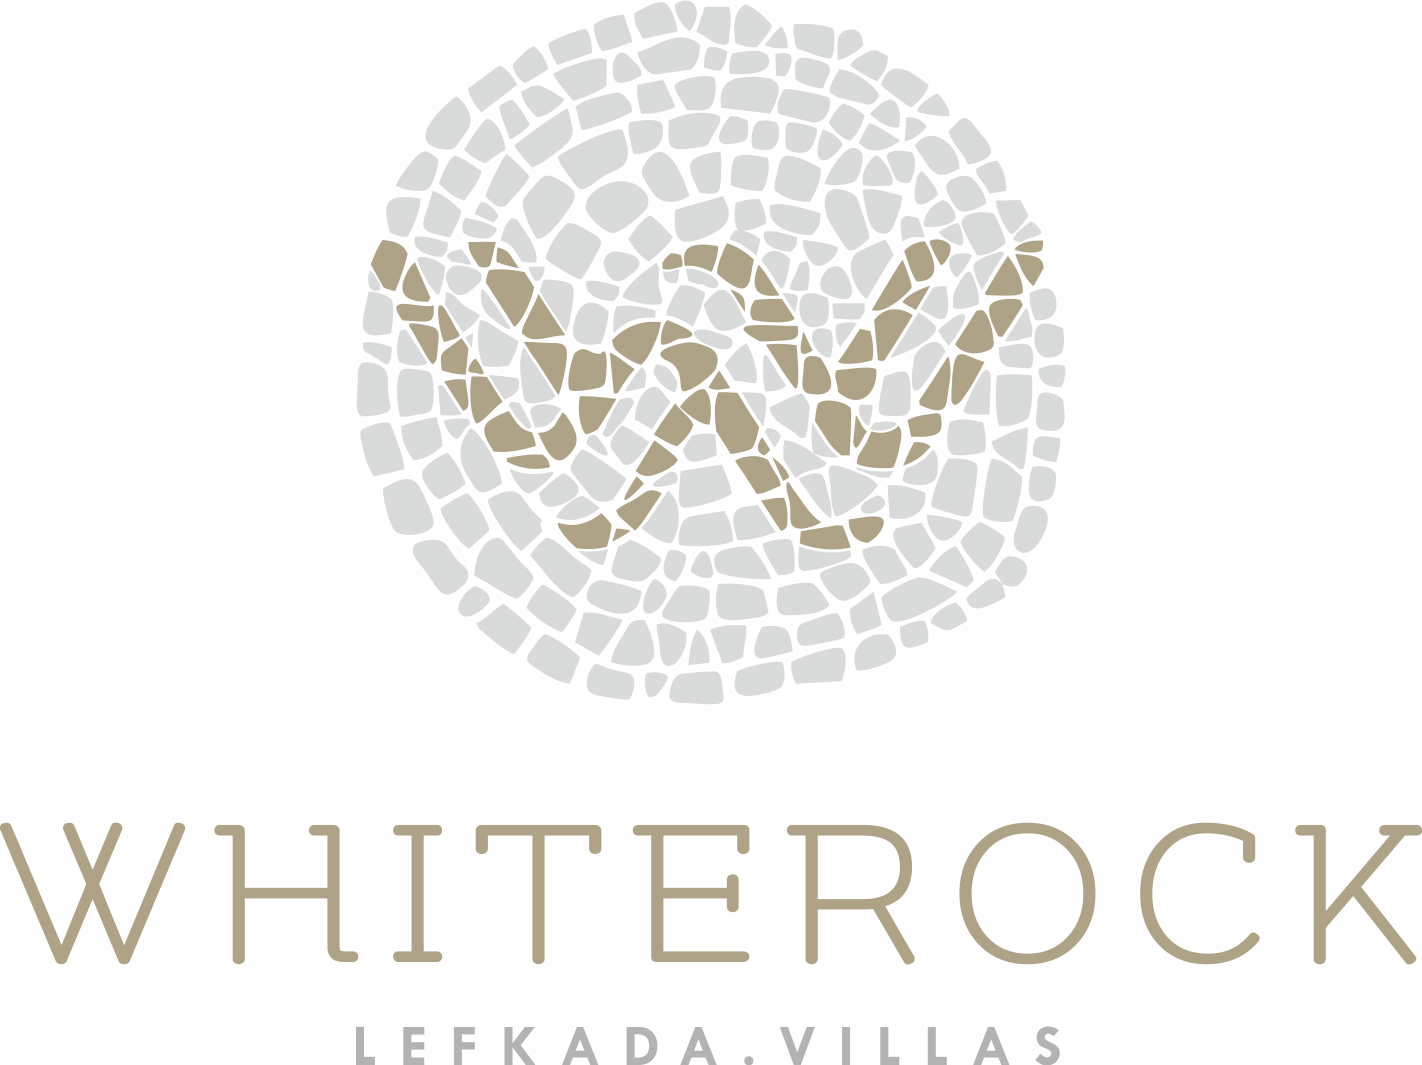 White Rock Villas logo